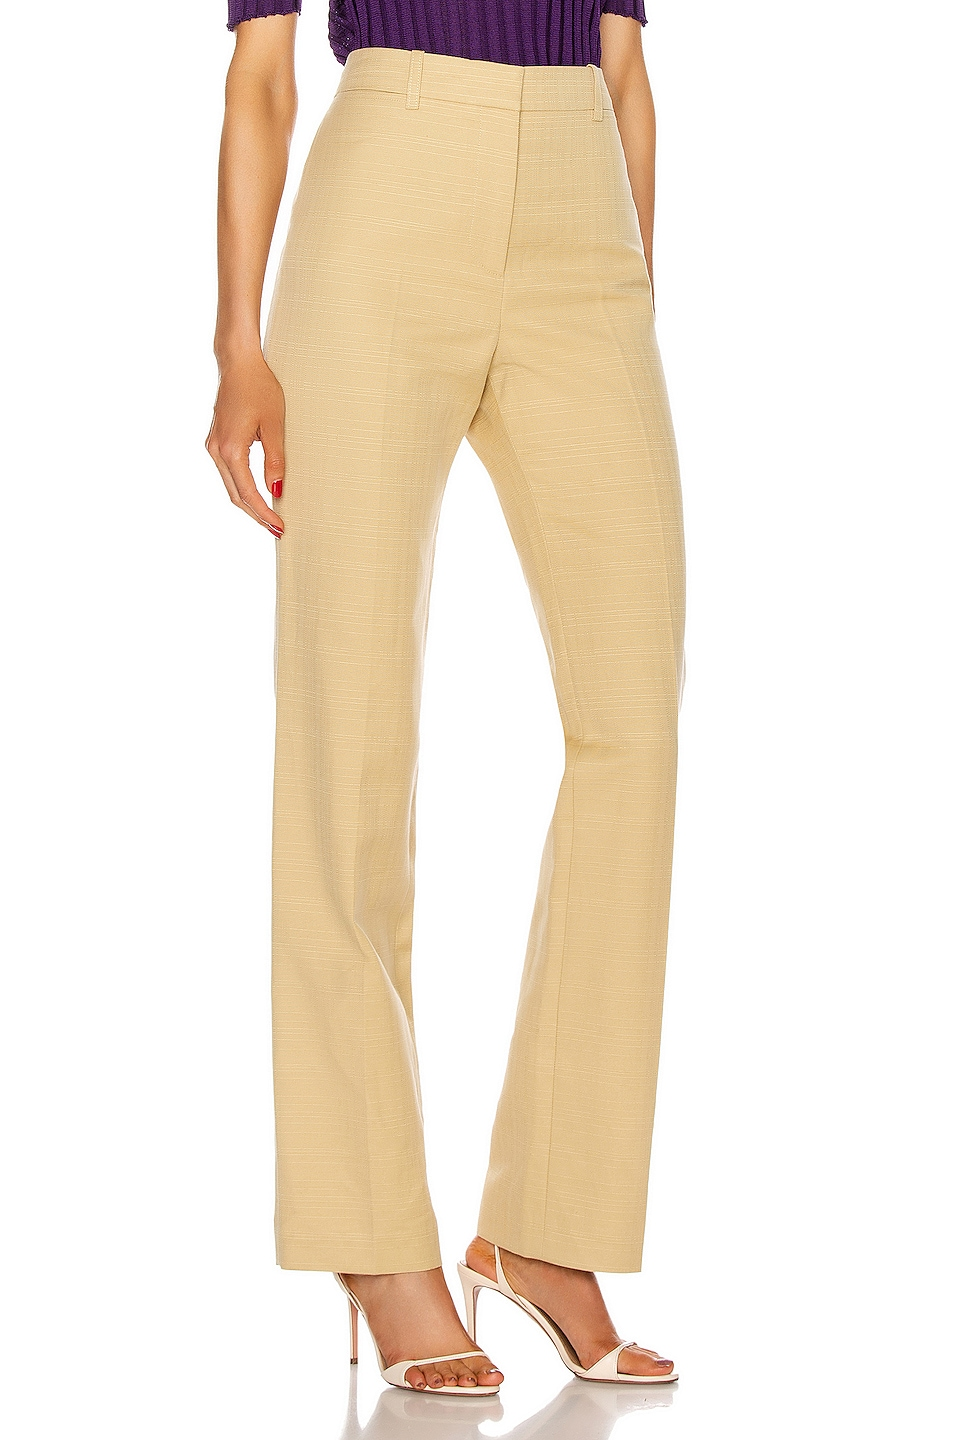 Image 2 of Victoria Beckham High Waisted Slim Leg Trouser in Sand